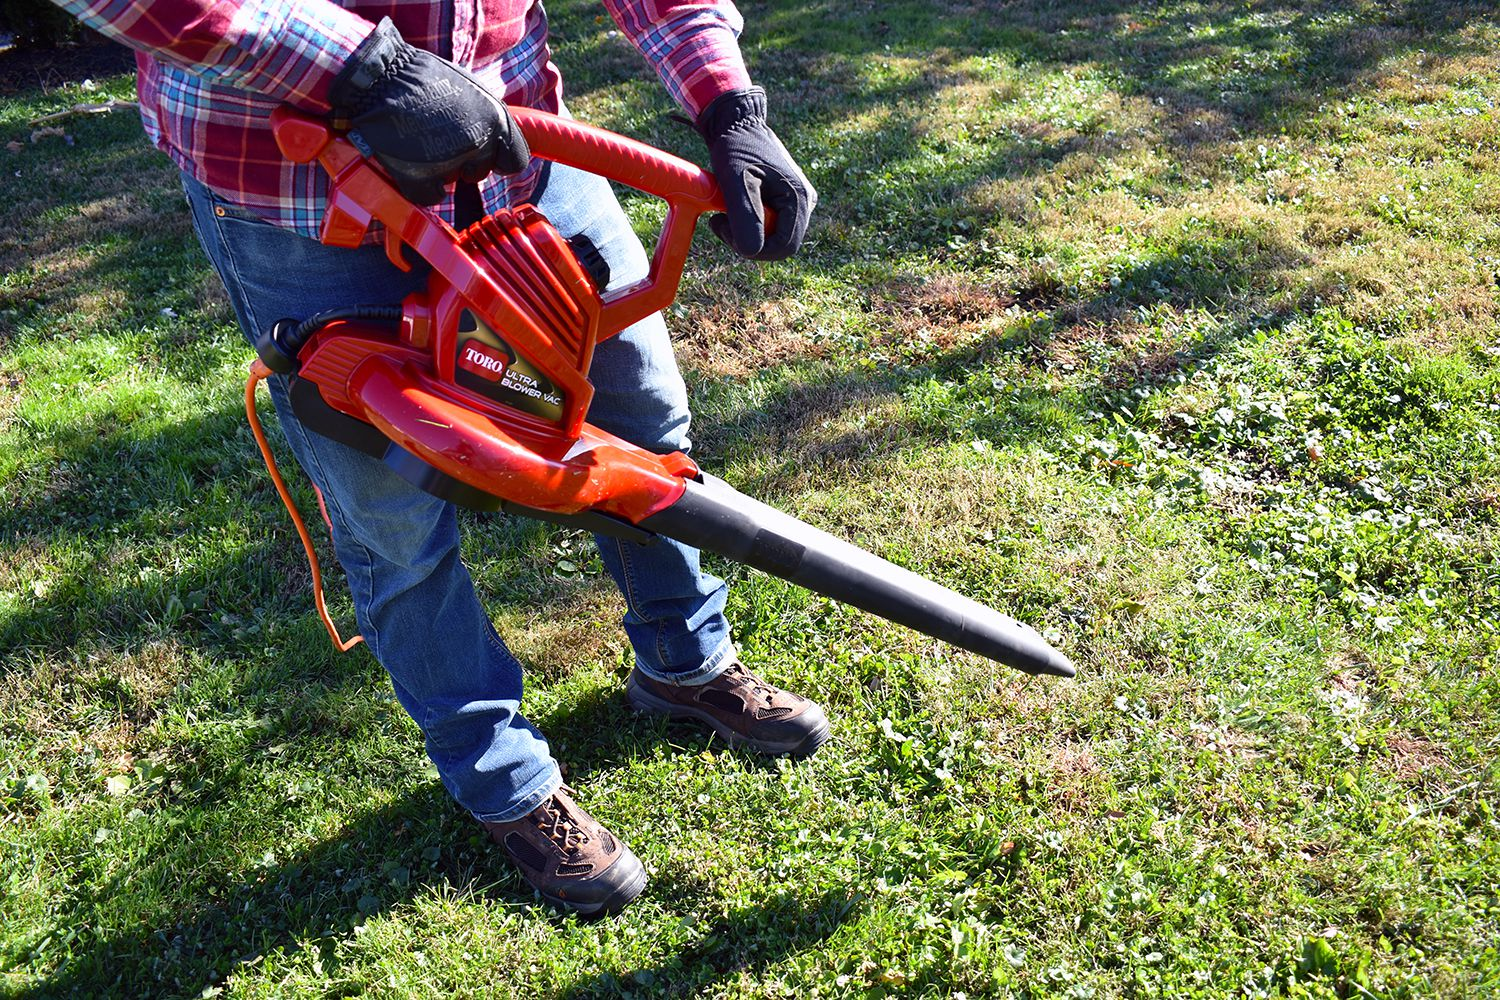 Toro Ultra Blower Vac Review A Cleverly Designed Three In One Tool